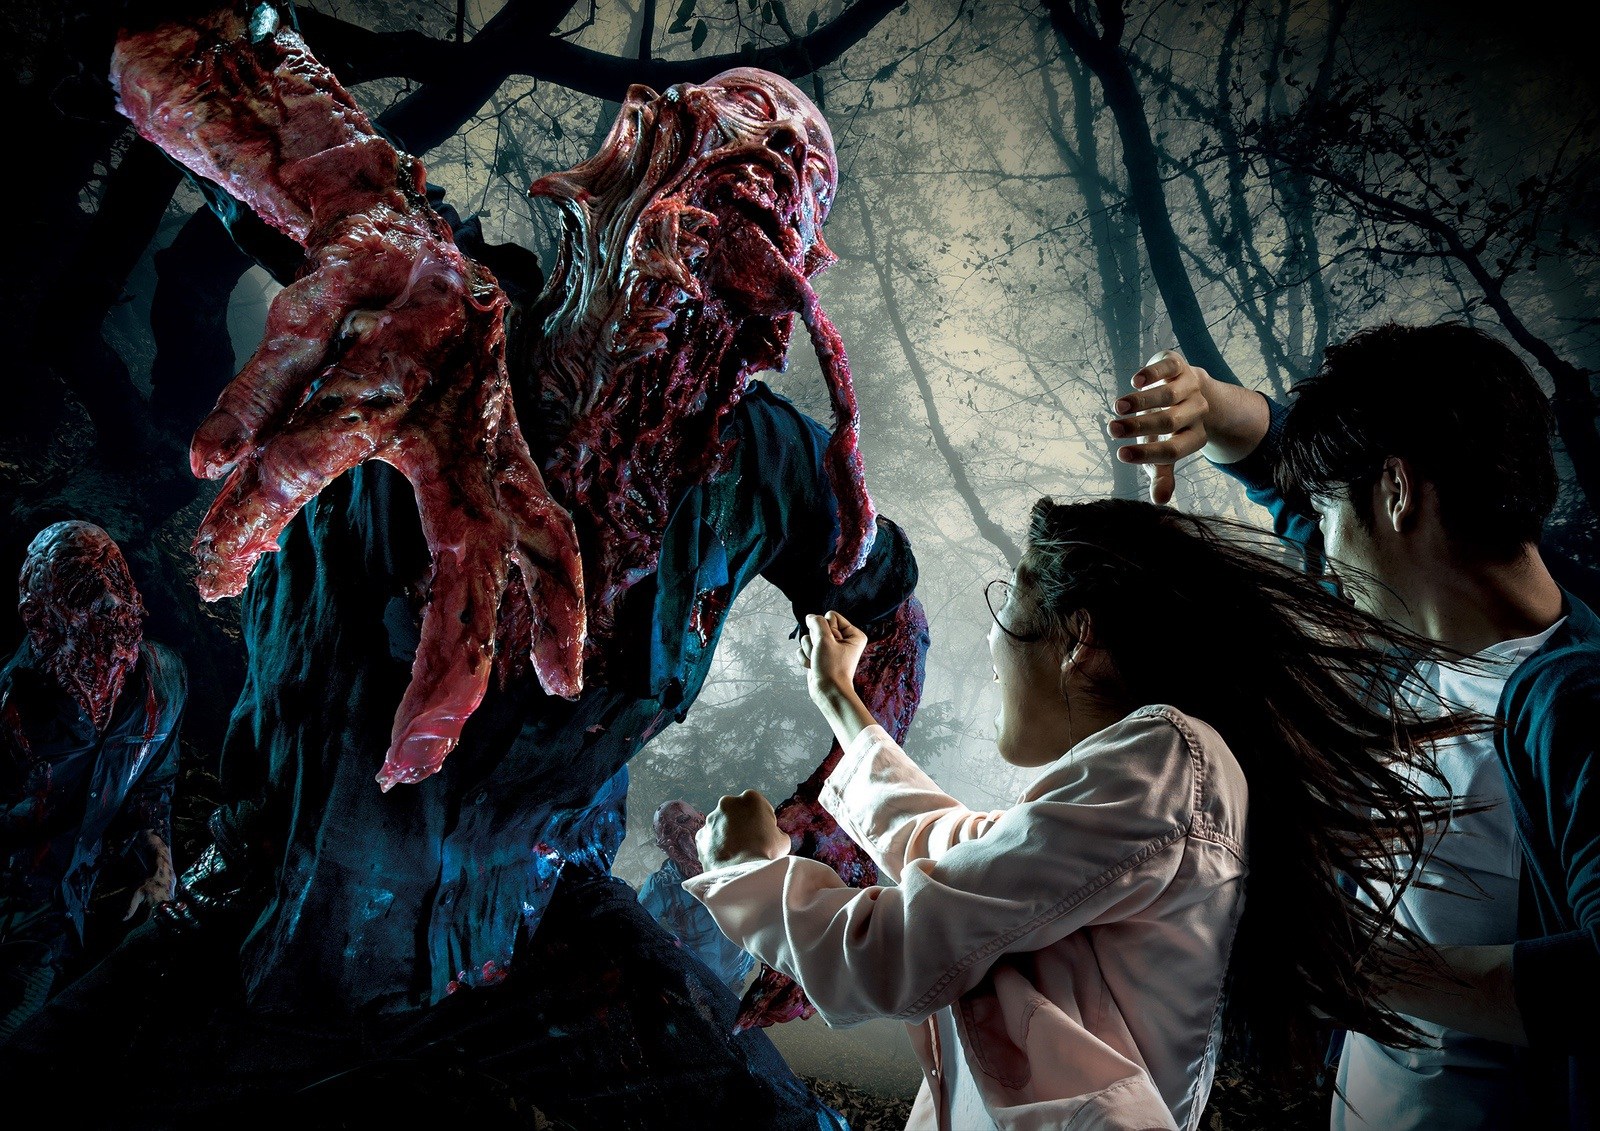 Universal Studios Japan Halloween 2018 Lineup Revealed – Halloween Horror Nights - The Survival - Deadman's Forest 2 Outdoor Horror Maze